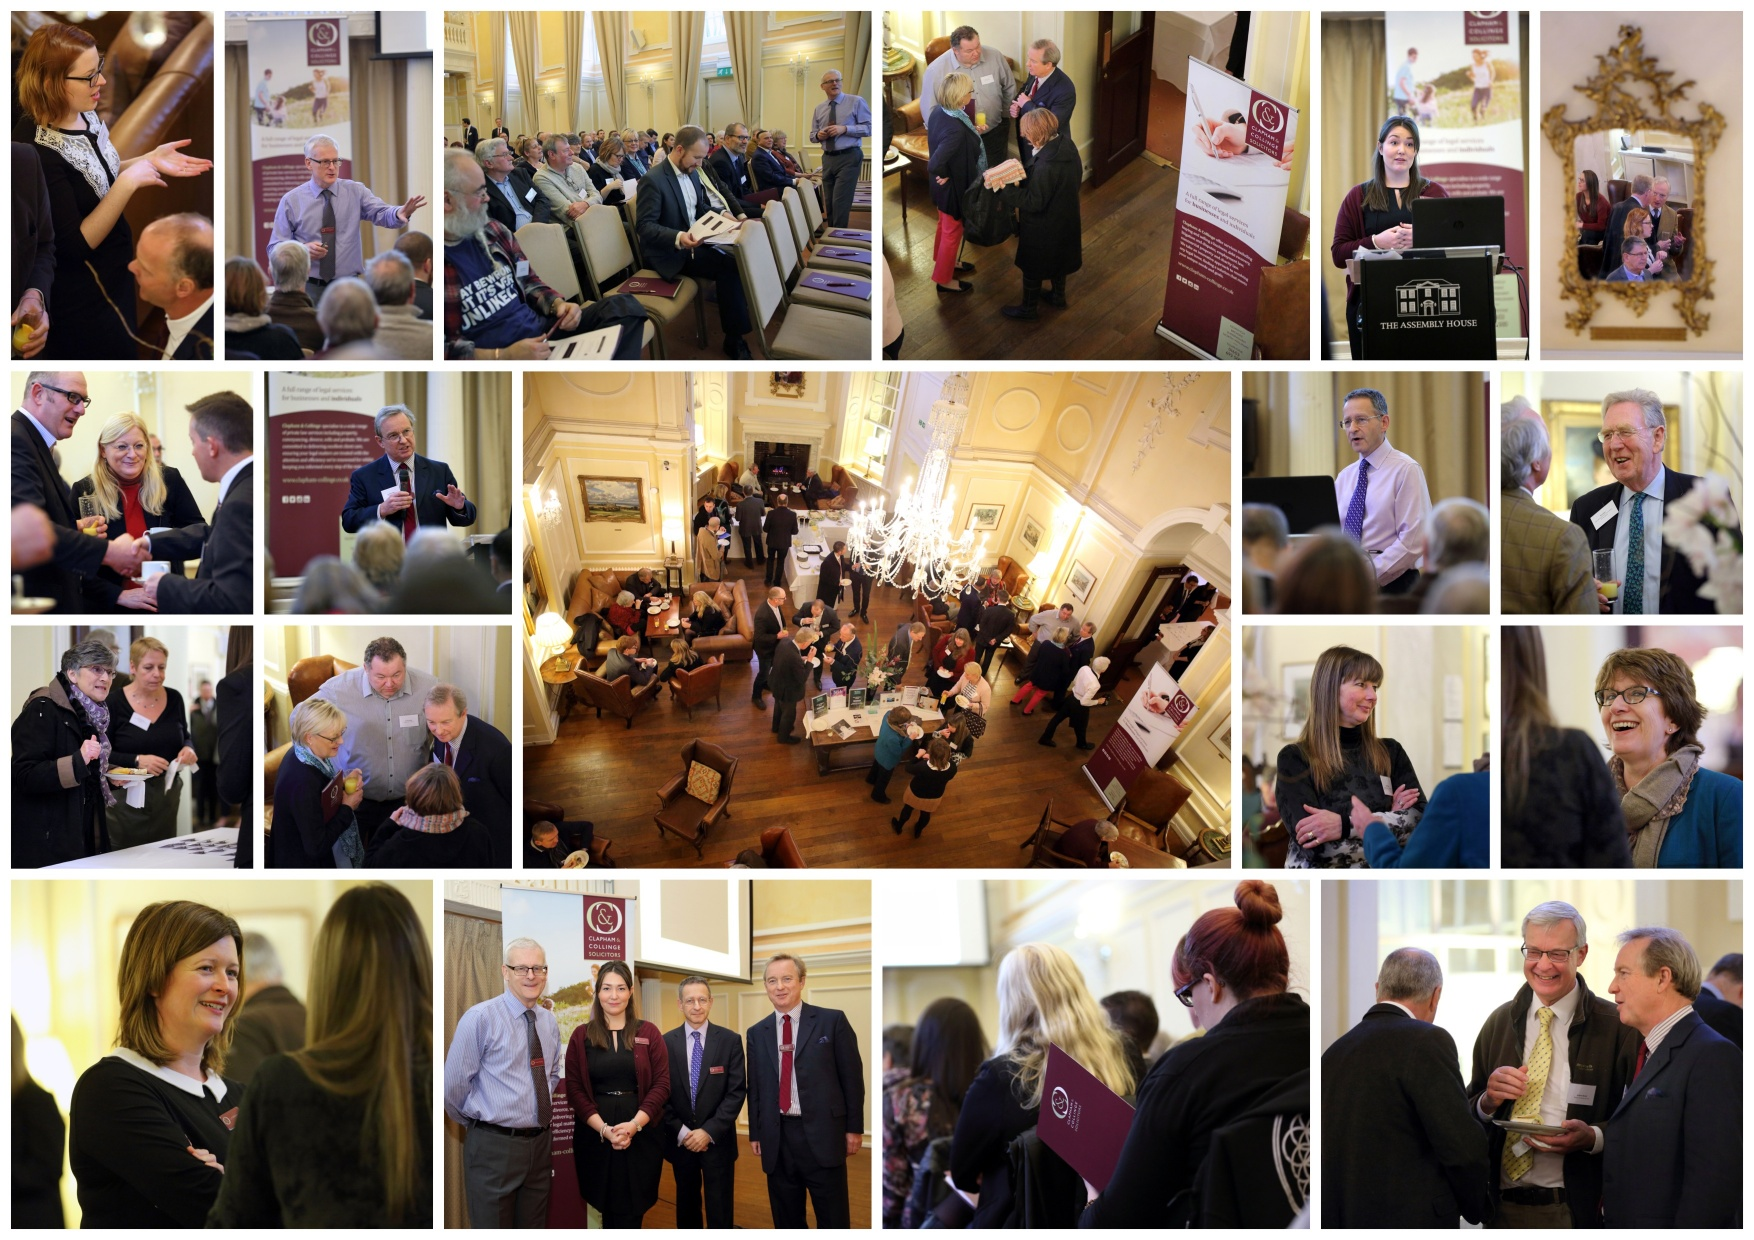 clapham-collinge-charities-legal-seminar-montage